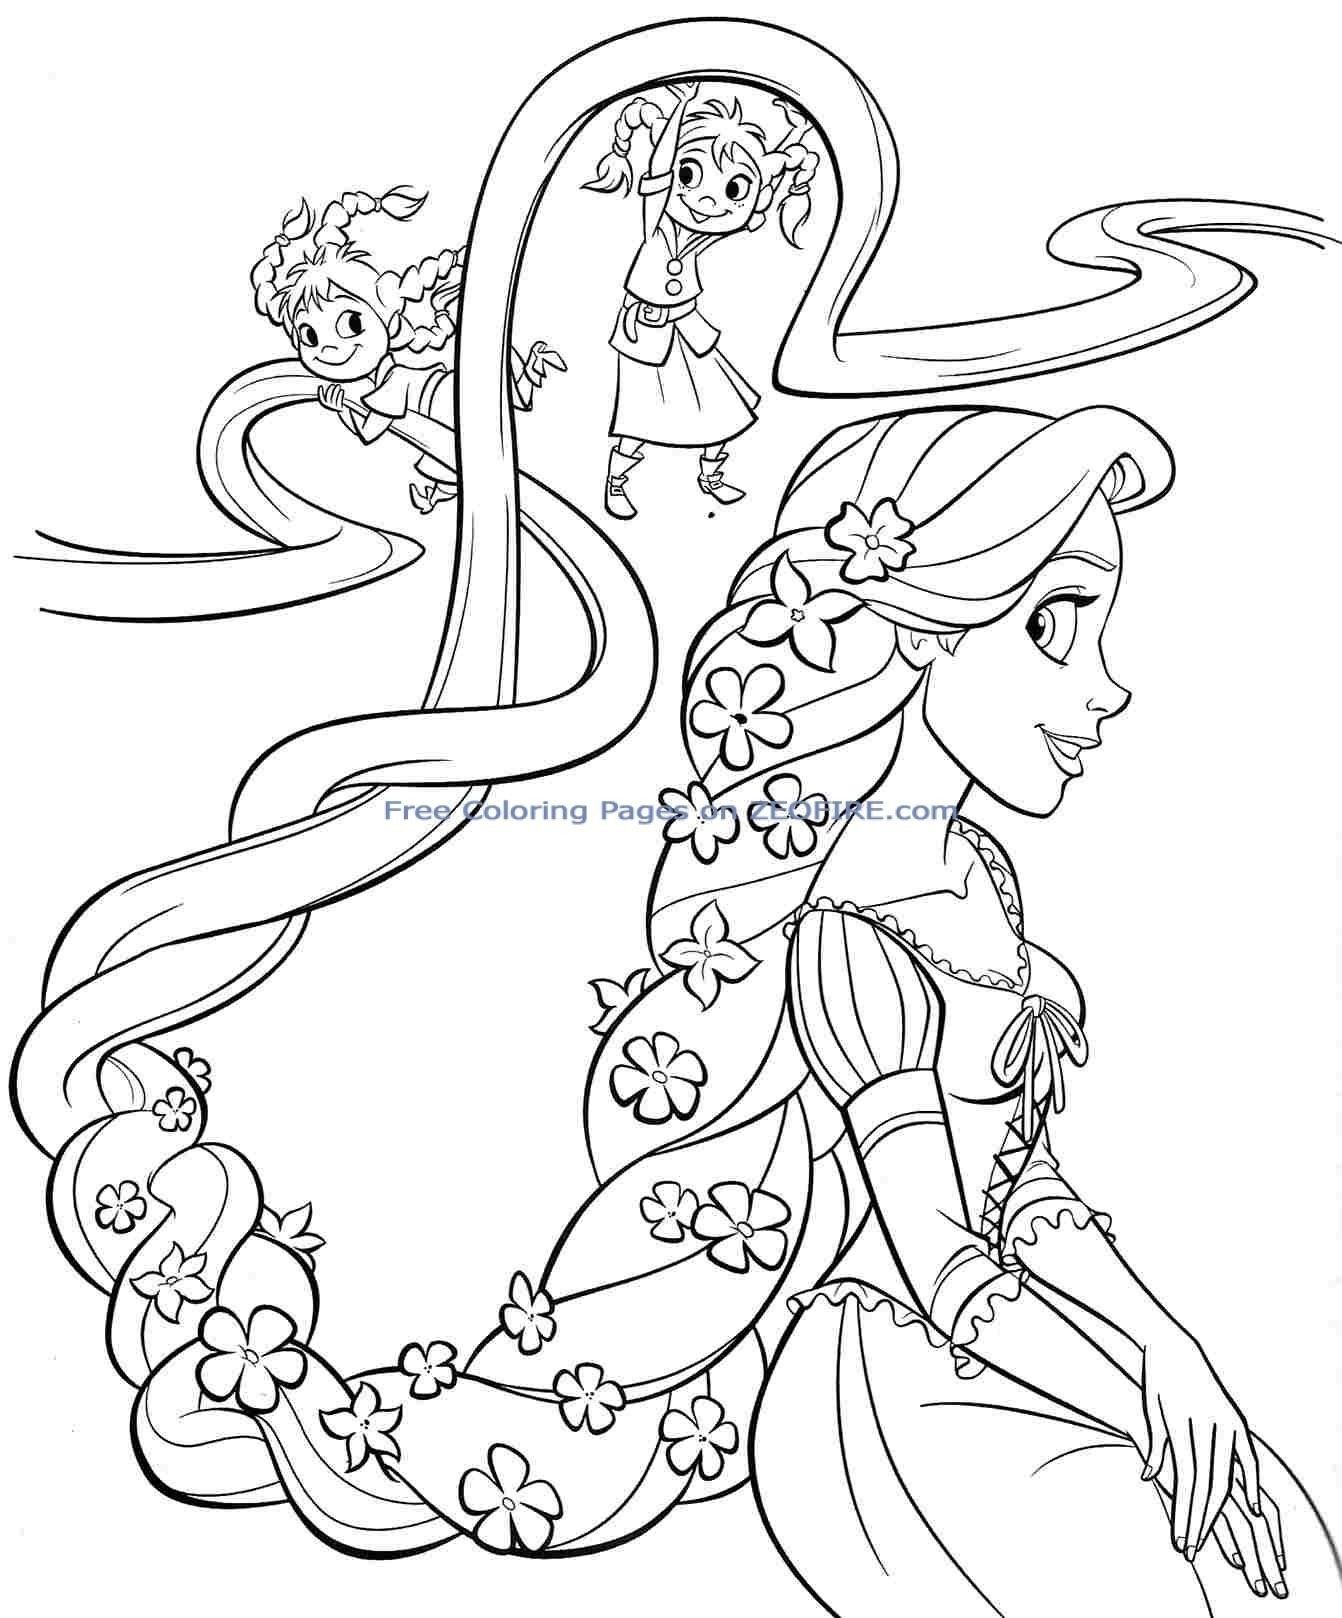 Disney Princess Coloring Pages Rapunzel From The Thousands Of Images On The Net Re Disney Princess Coloring Pages Ariel Coloring Pages Tangled Coloring Pages